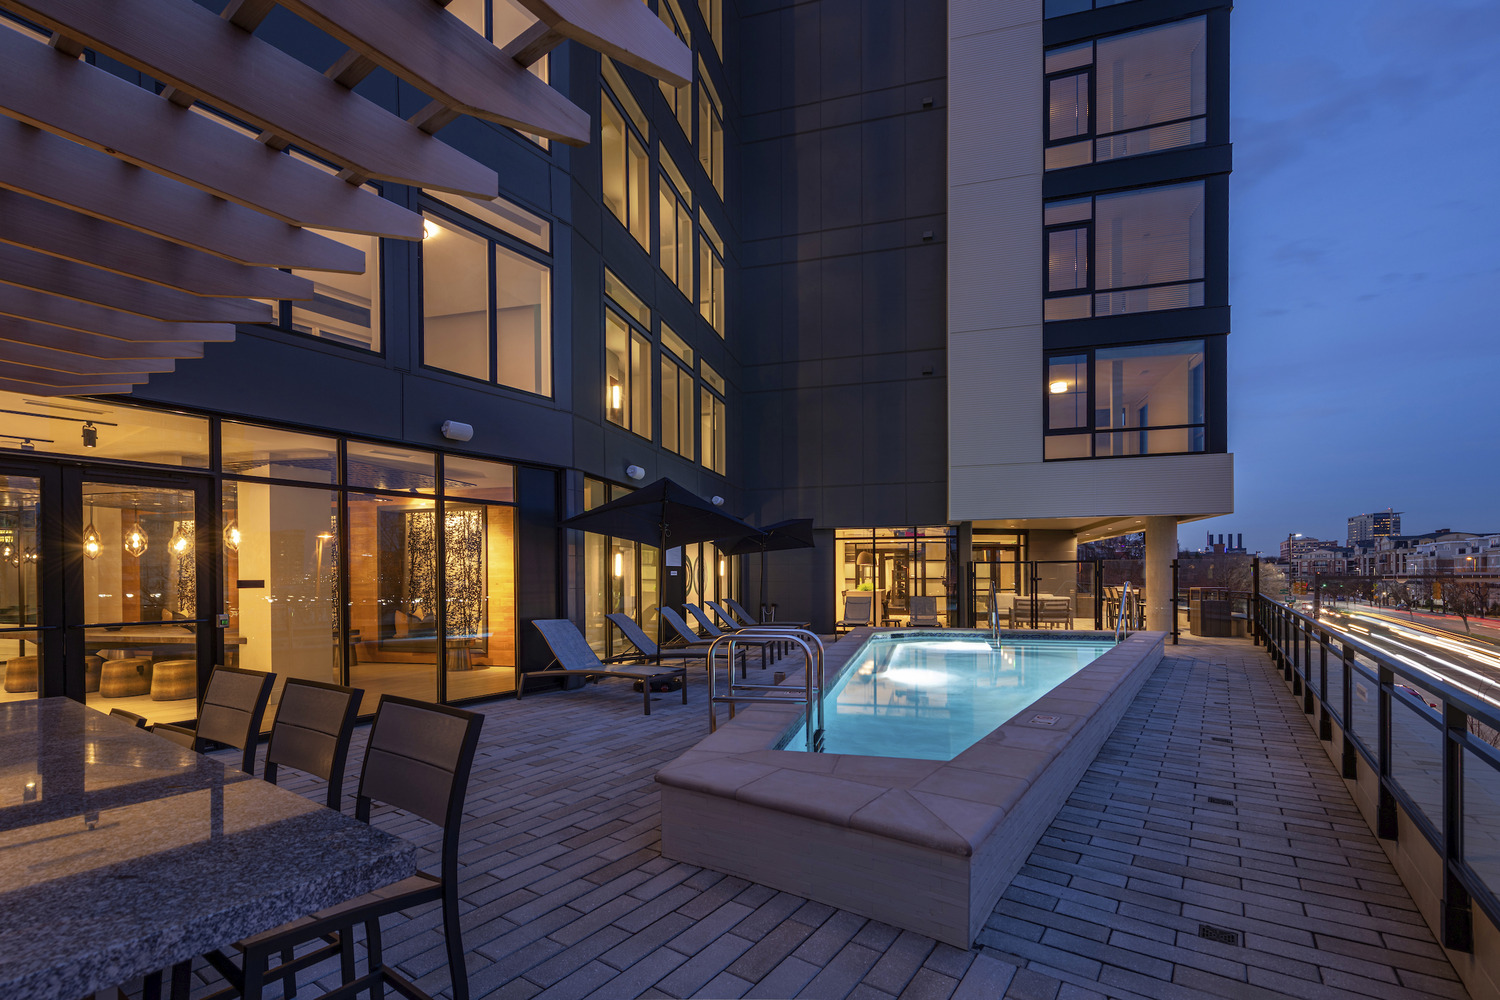 CBG builds Bainbridge Federal Hill, a LEED® Gold 228-Unit Luxury Apartment Community with Podium Parking in Baltimore, MD - Image #6